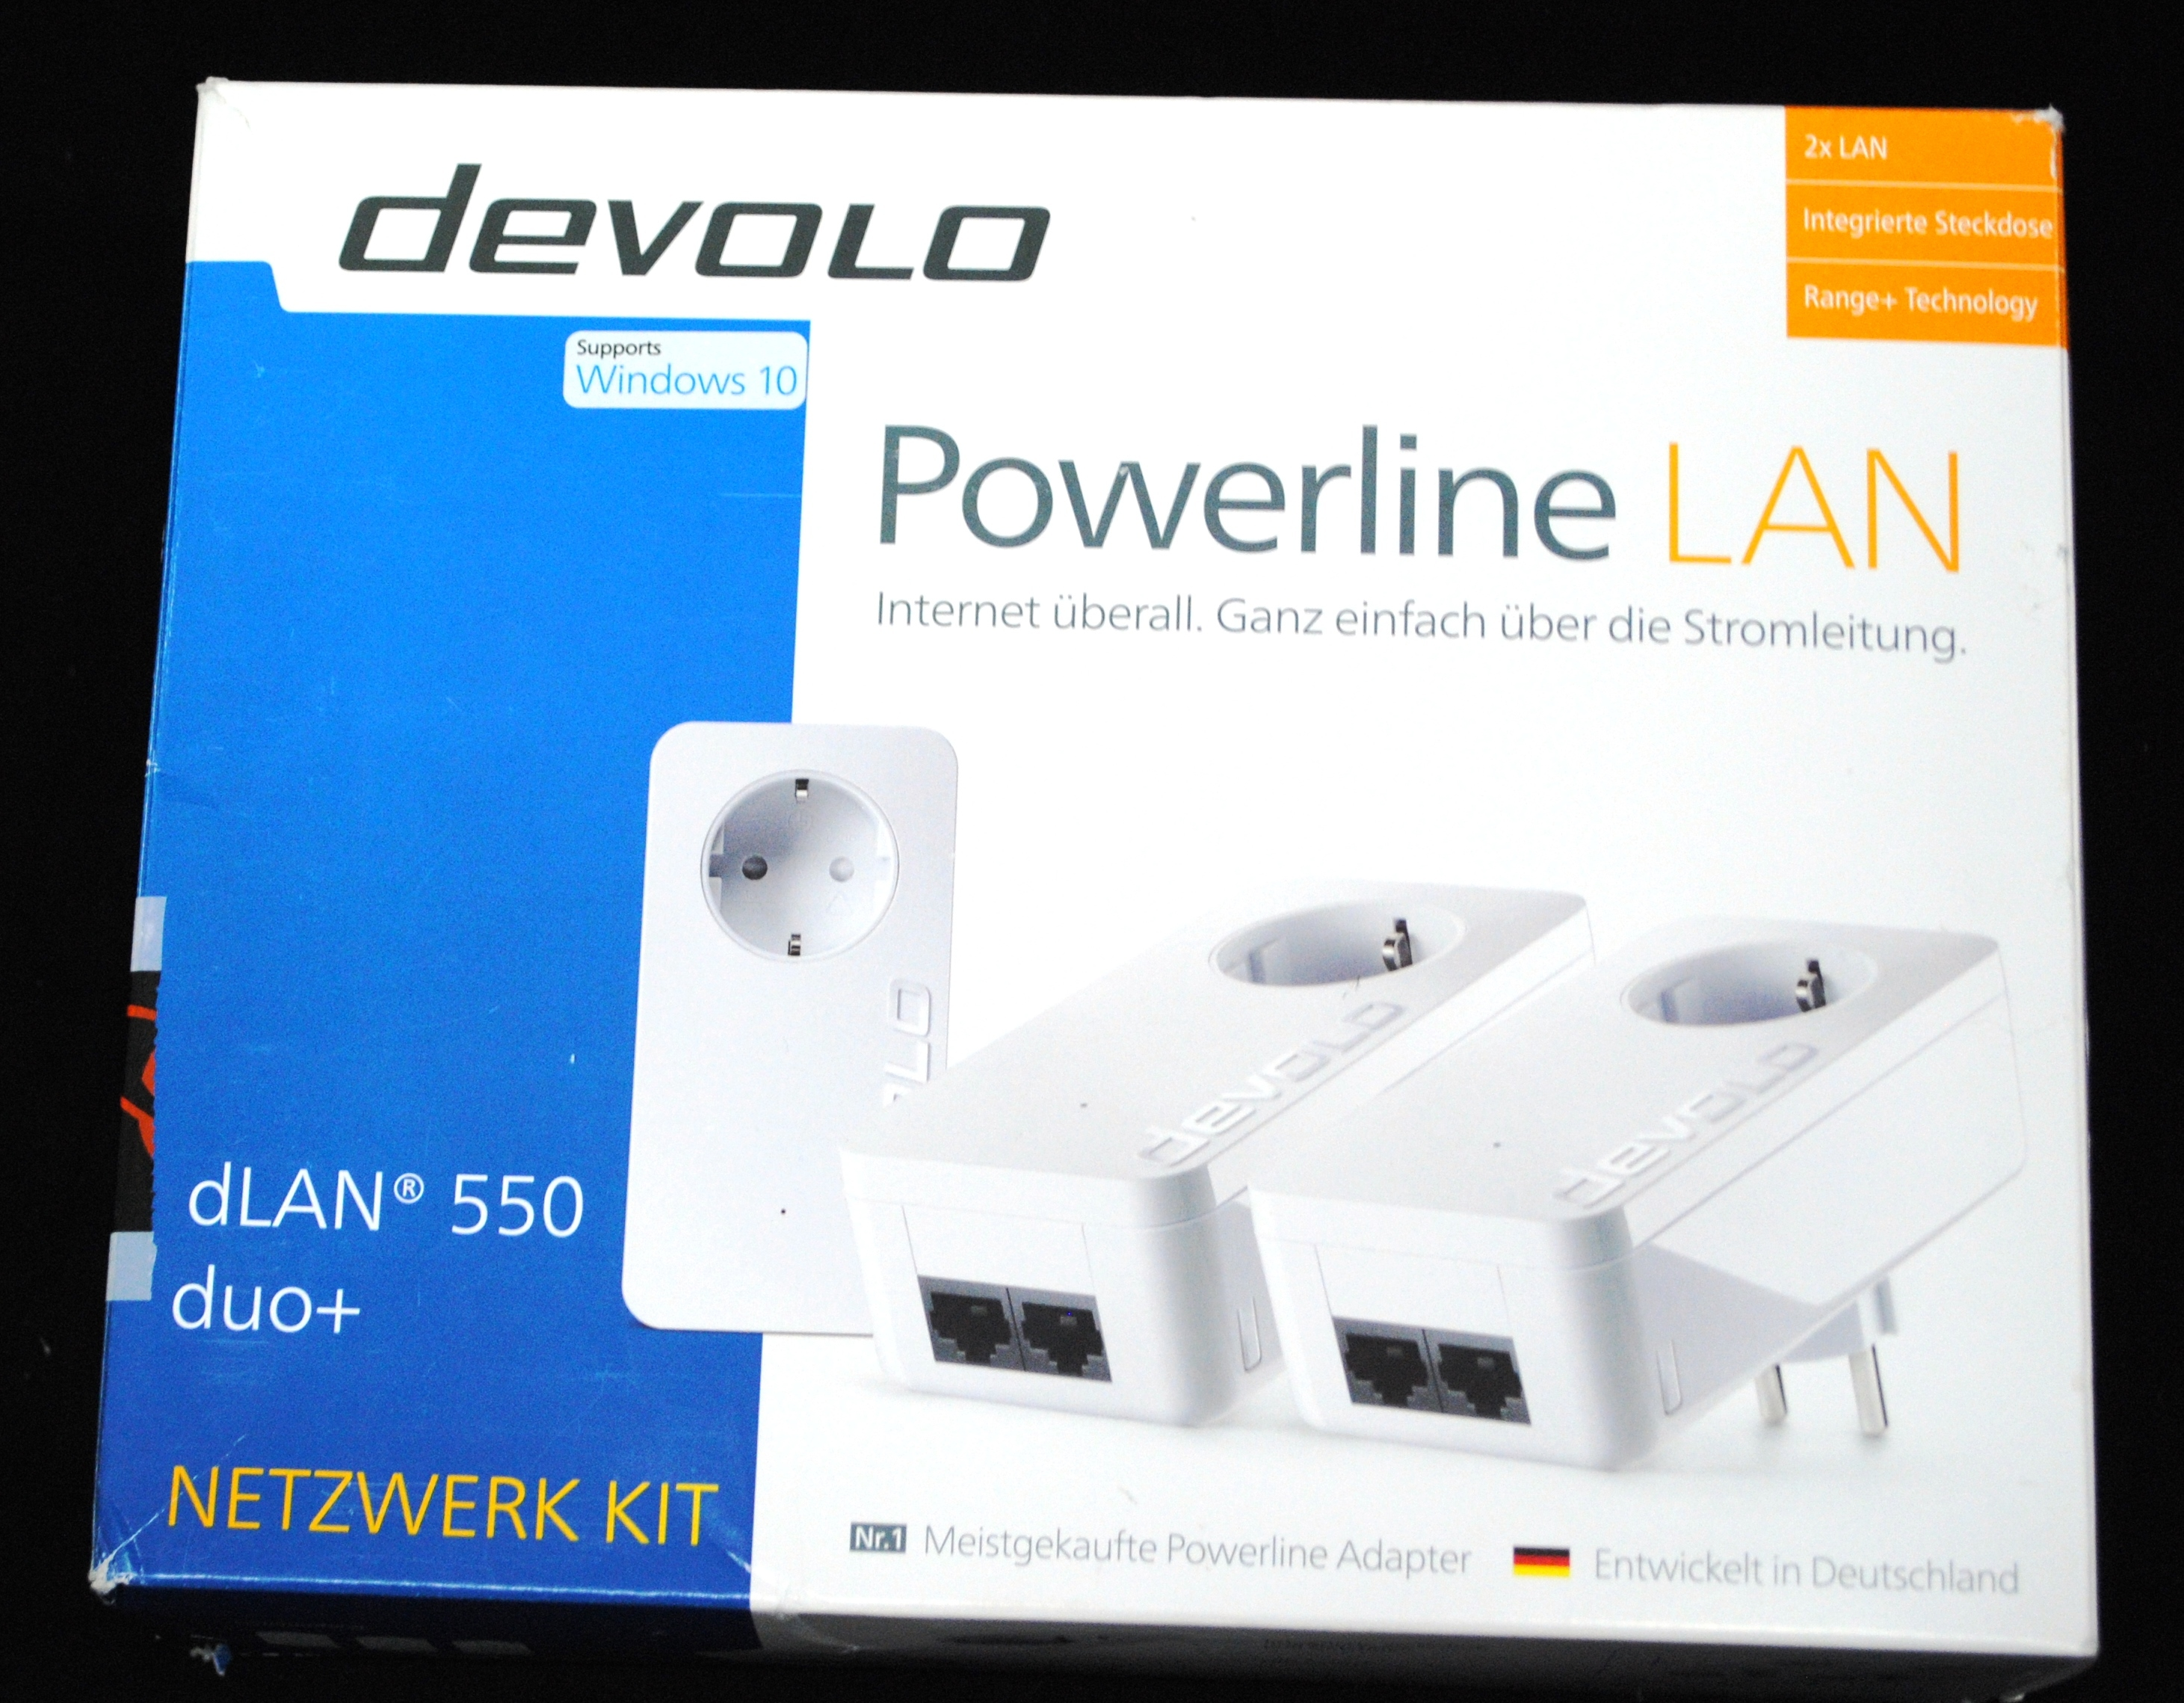 devolo 9304 dlan 550 duo network kit powerline dlan b ware ebay. Black Bedroom Furniture Sets. Home Design Ideas